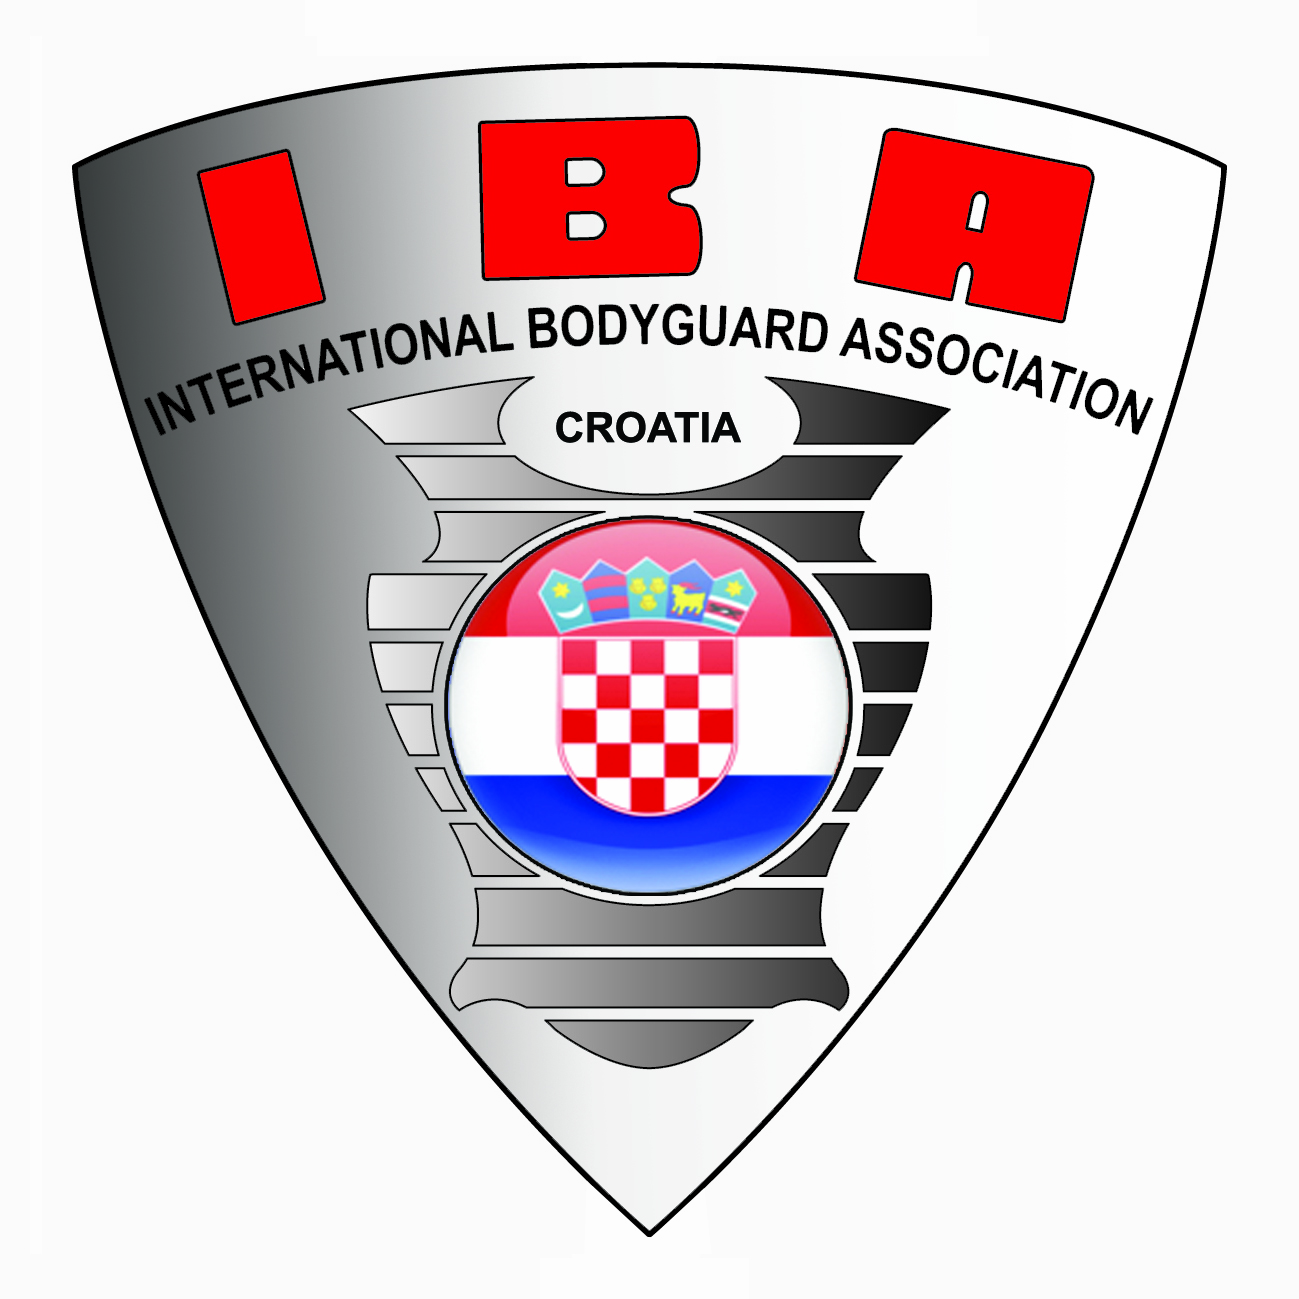 International Bodyguard Association (IBA) Hrvatska